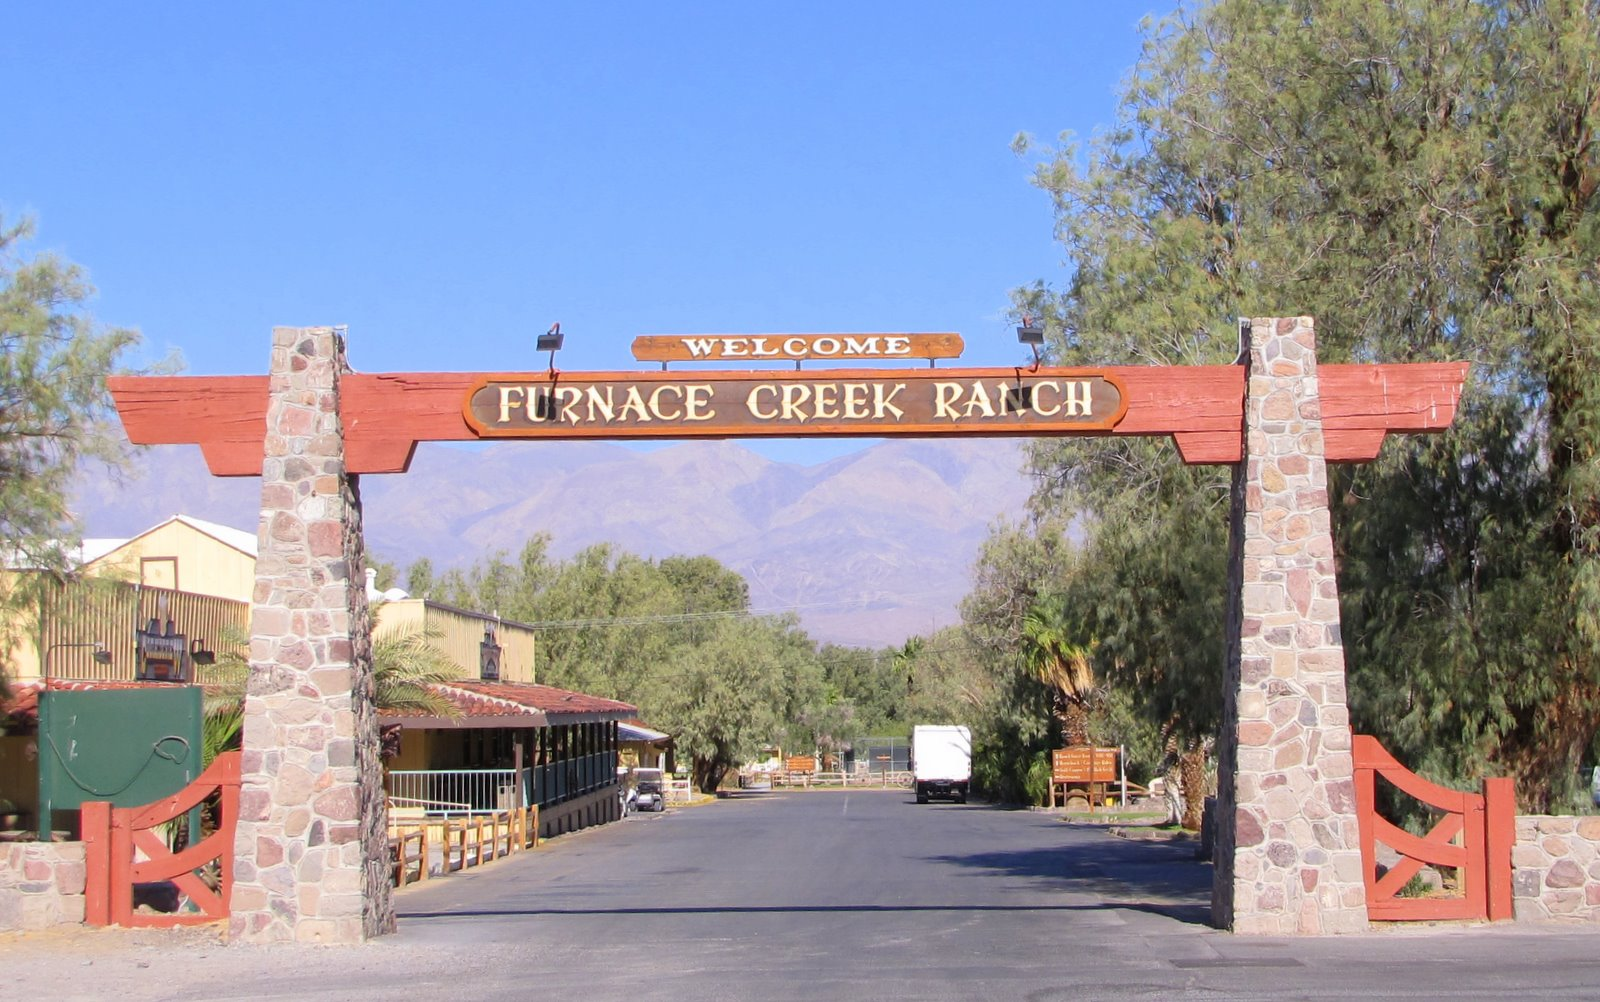 The Western Swing The Furnace Creek Ranch Death Valley